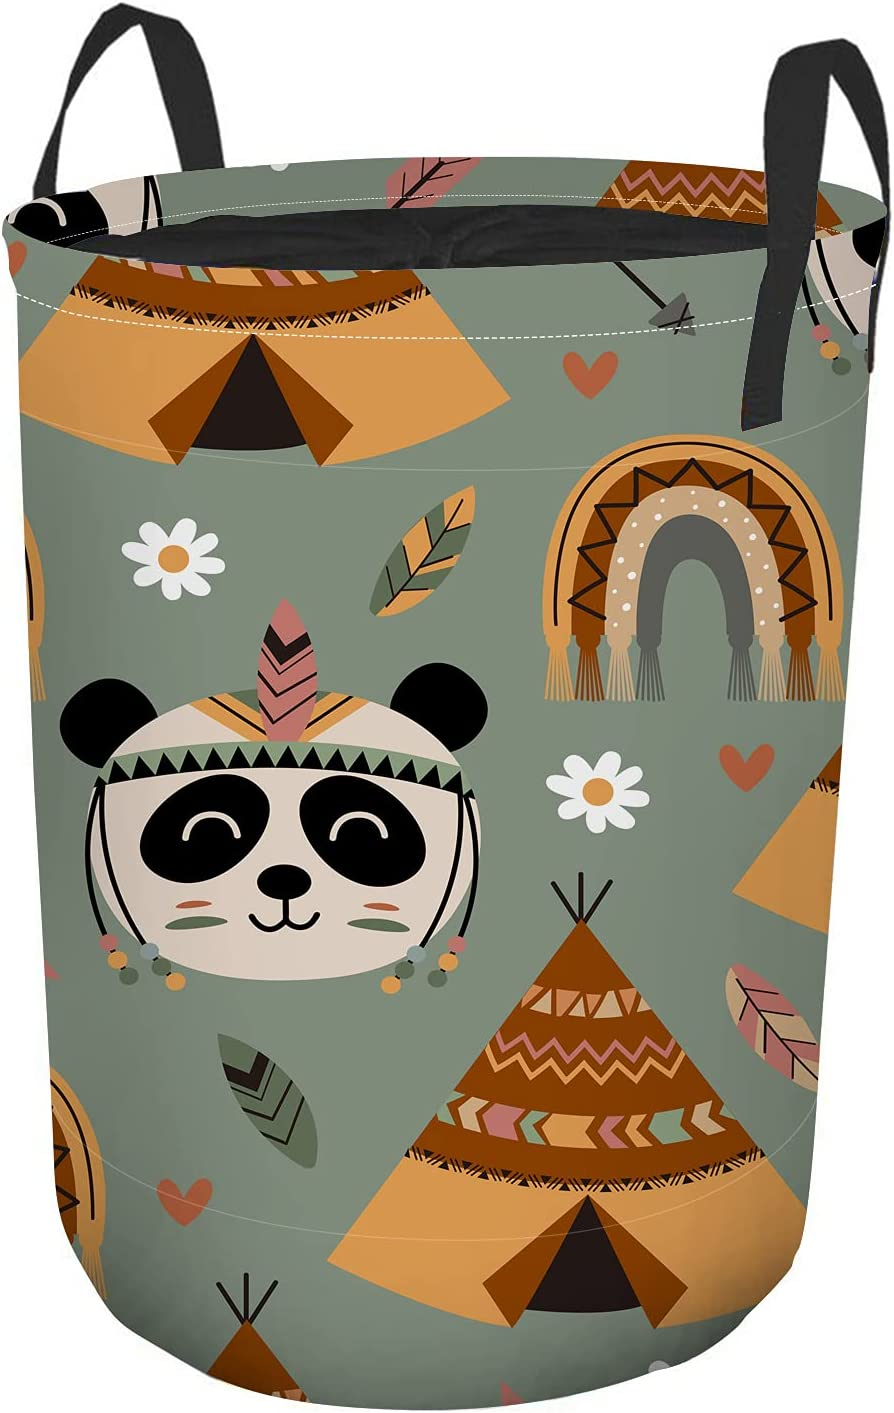 Max 89% OFF Nicokee Round Online limited product Tunic Dirty Pocket Panda Tribal Cartoon Cute Tent